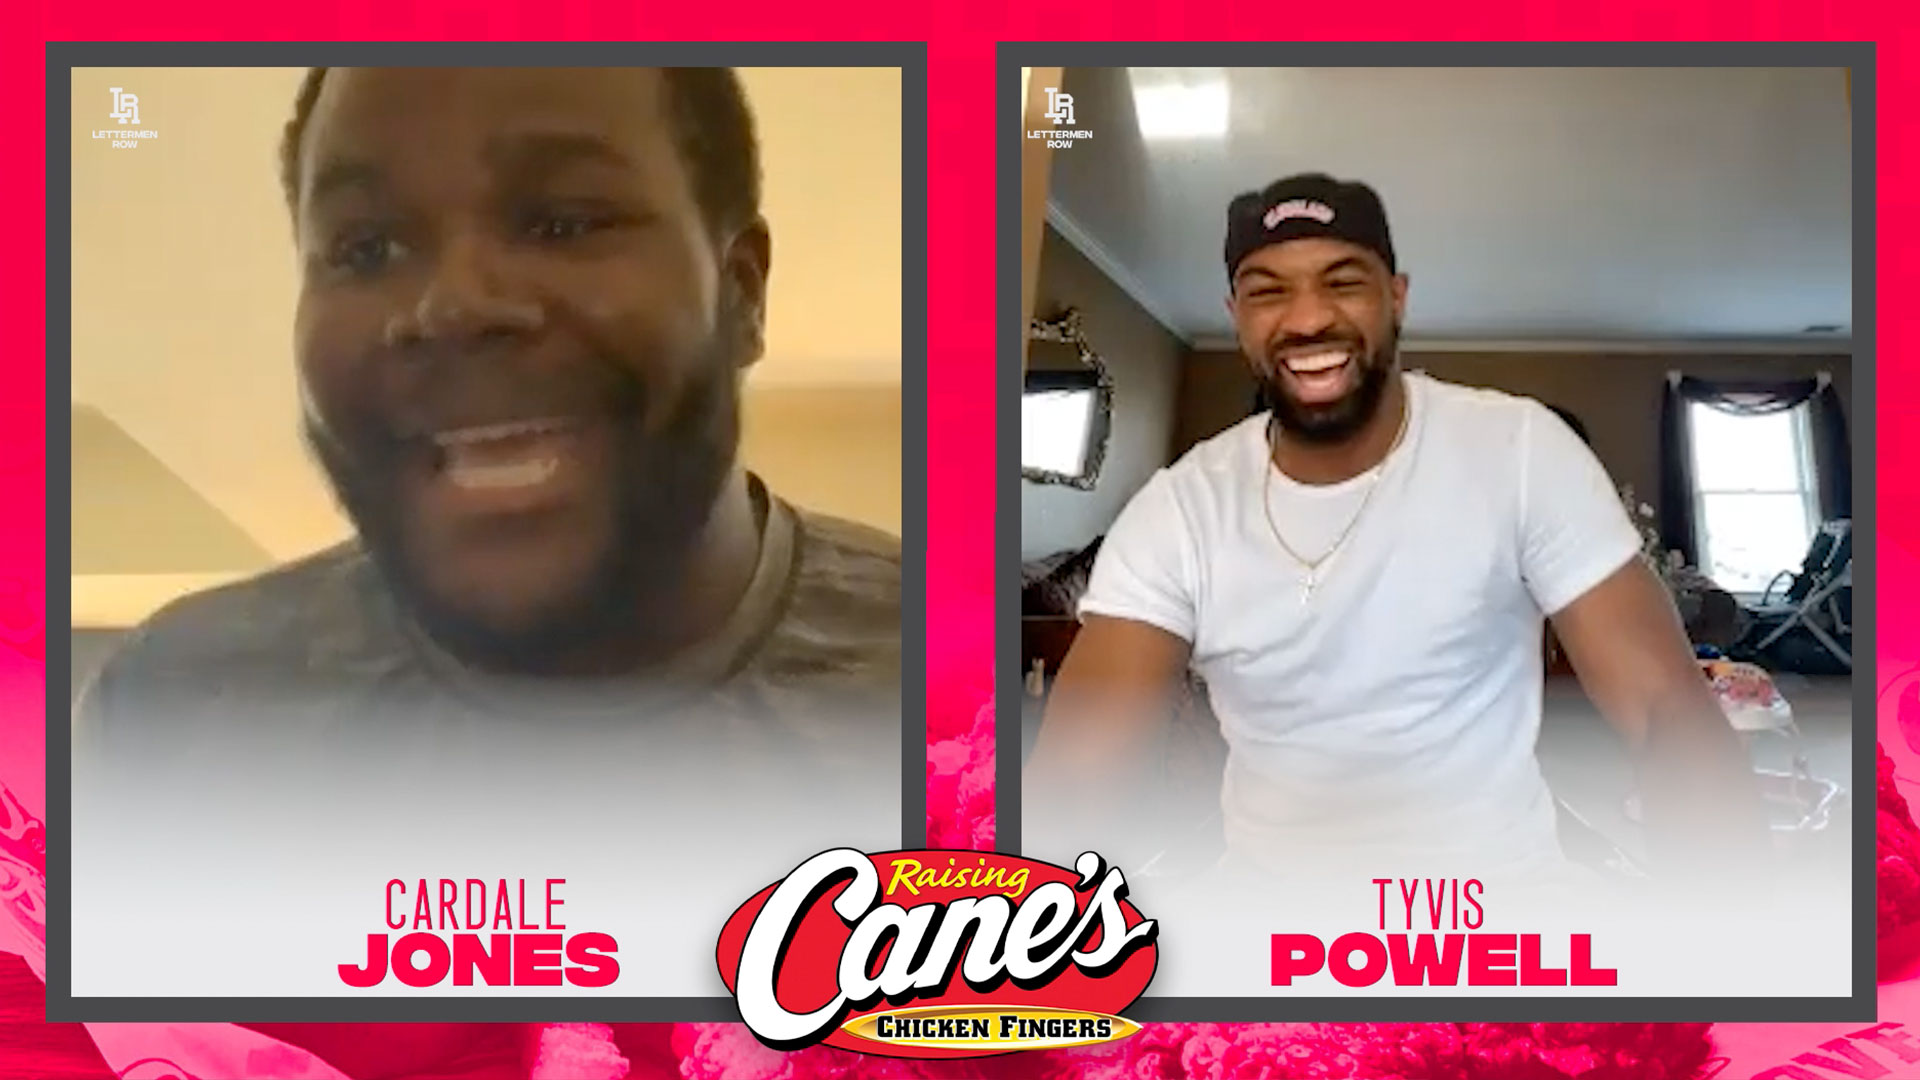 Cardale-and-Tyvis-featured-revised